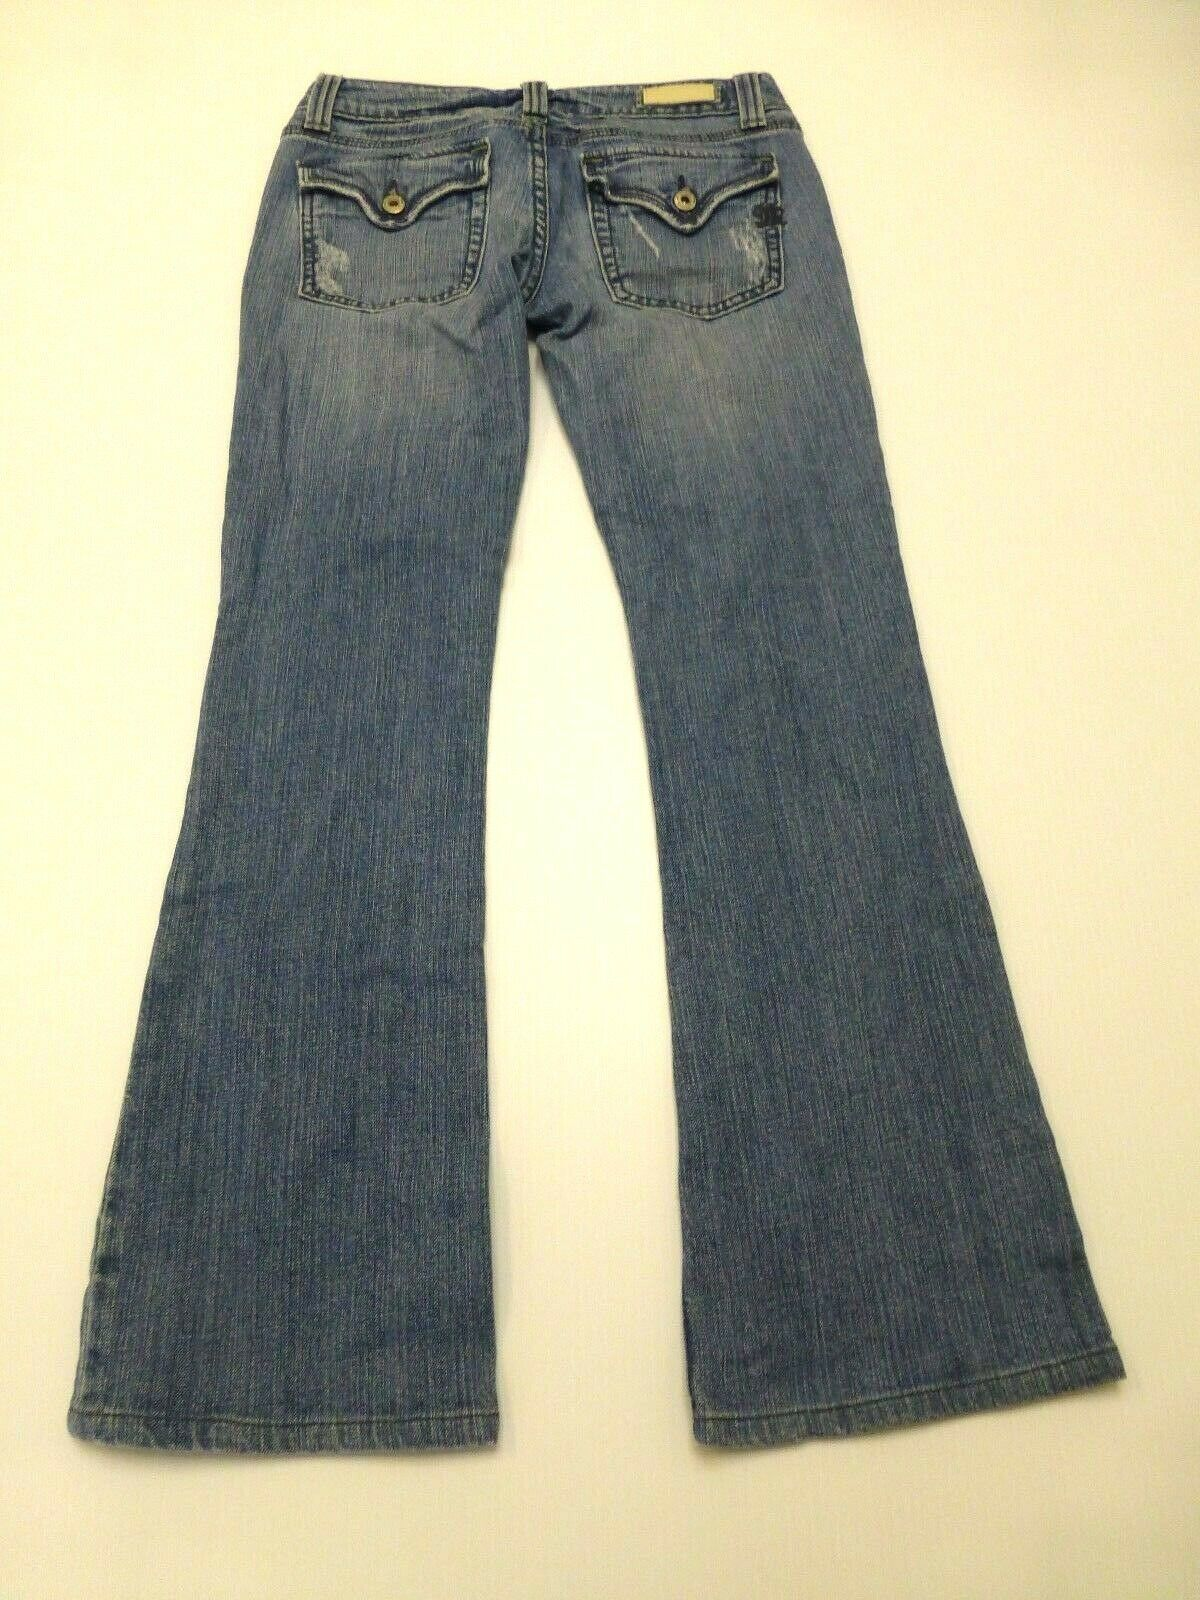 Miss Me Jeans Womens Size 28 bluee Jeans Great Condition